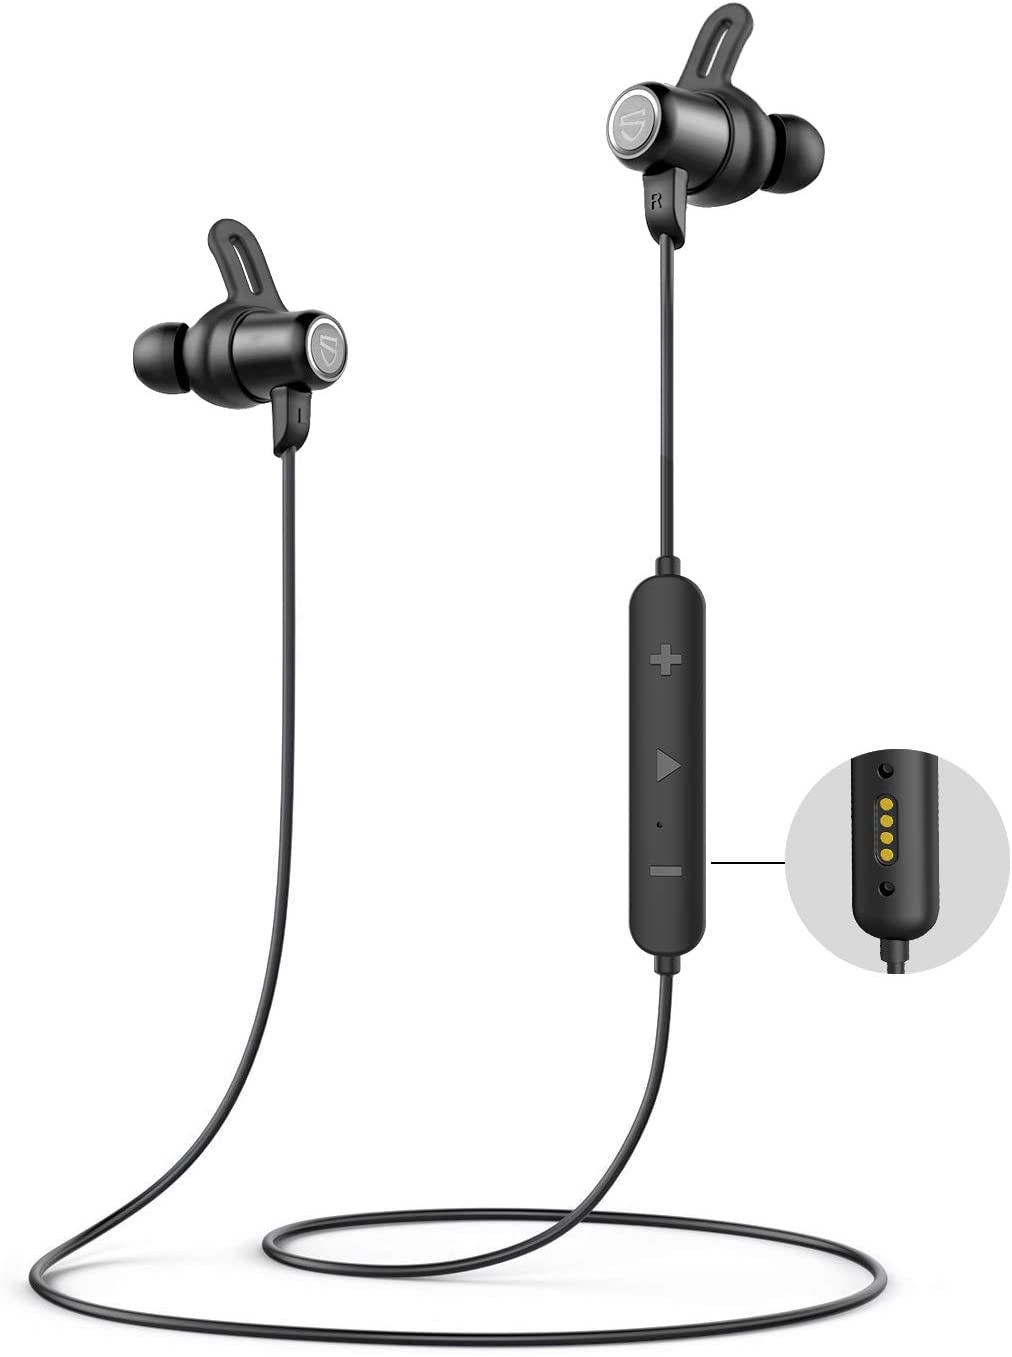 SoundPEATS Q35 HD Neckband Bluetooth Headphones IPX8 Waterproof Wireless Earphones for Sports in-Ear Stereo Bluetooth 5.0 Earbuds with Magnetic Charger Built-in Mic CVC 6.0 14 Hours Playtime